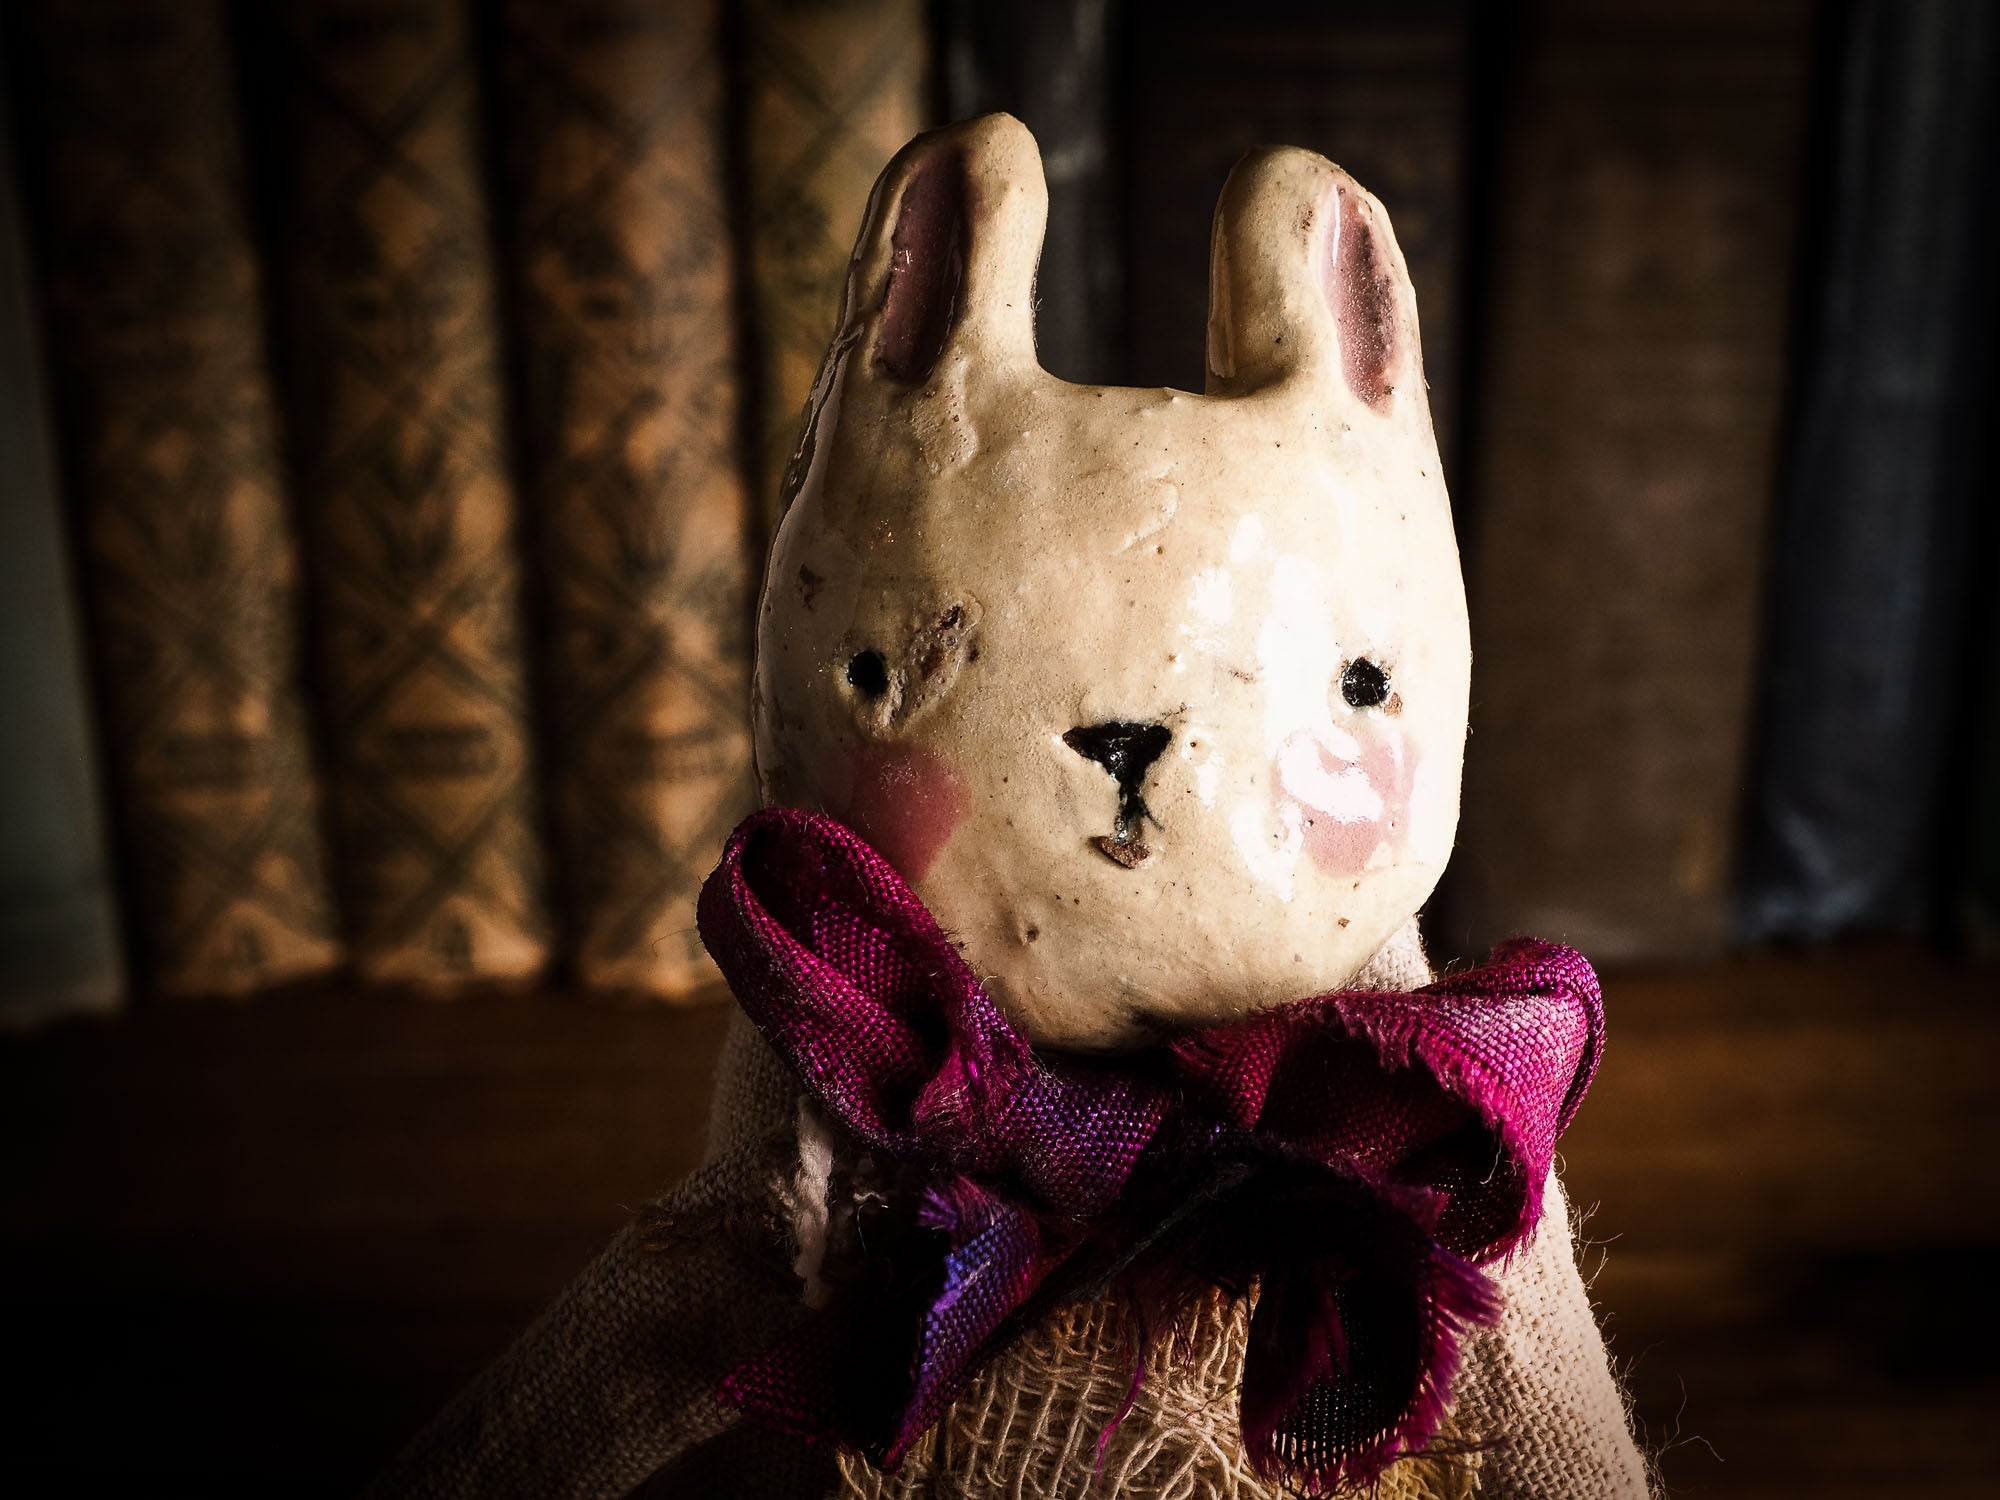 Bunny Rabbit Woodlands Soft sculpture art doll by Idania Salcido Danita Art with a Handmade ceramics face, organic dyed fabric and silk bow